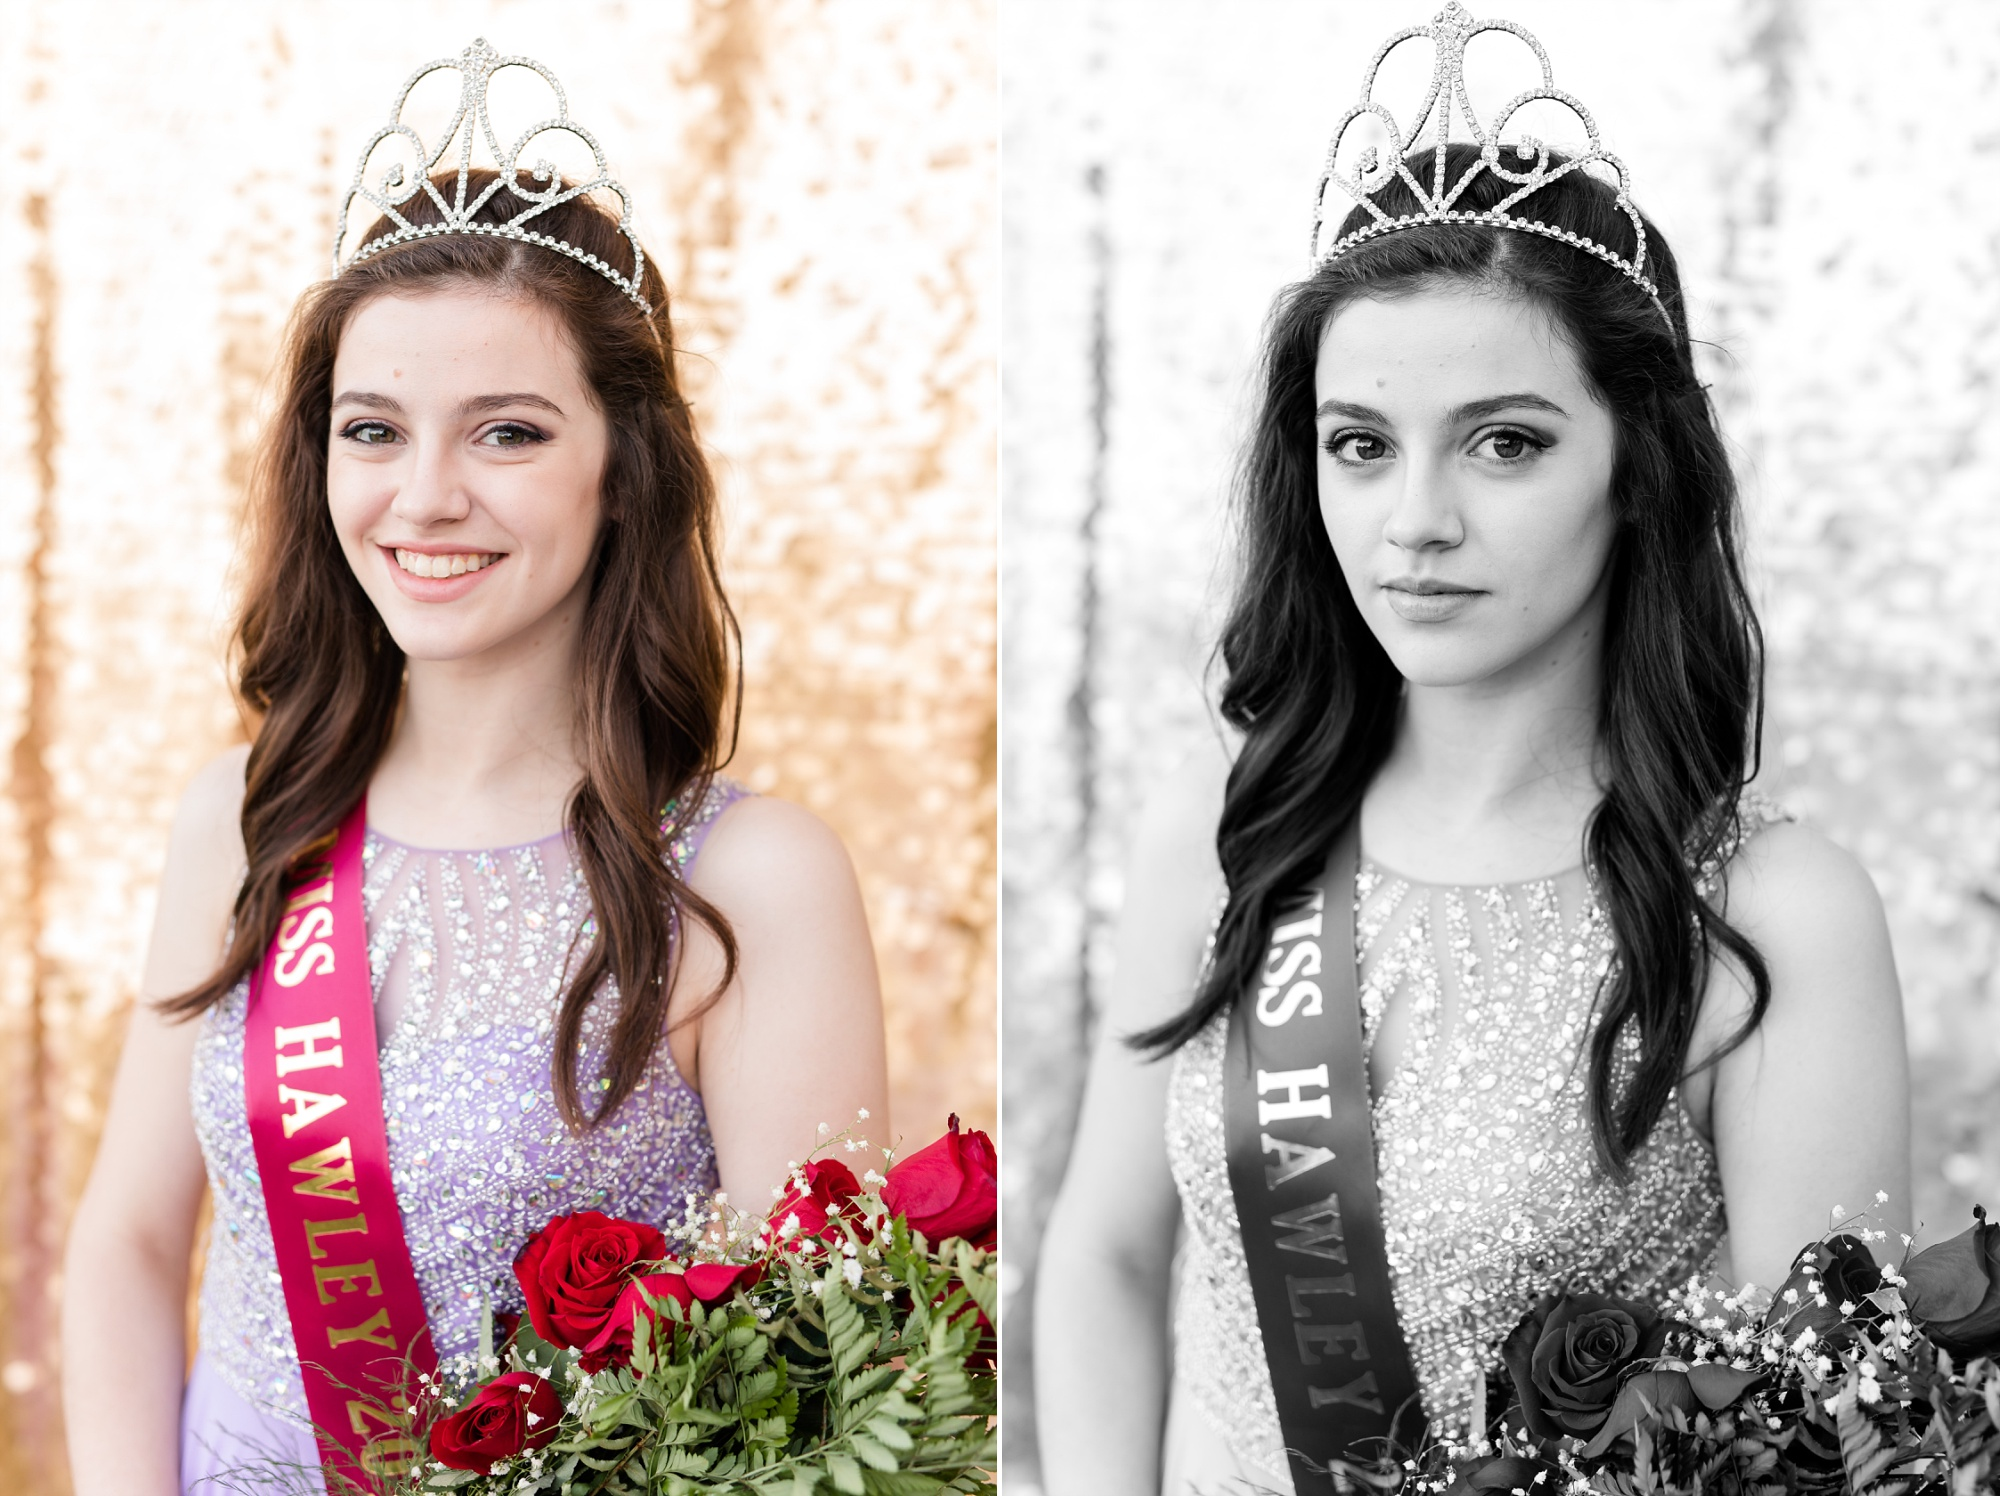 Miss Hawley Rodeo 2017, Minnesota, Pageant Winner by Amber Langerud Photography   Erin